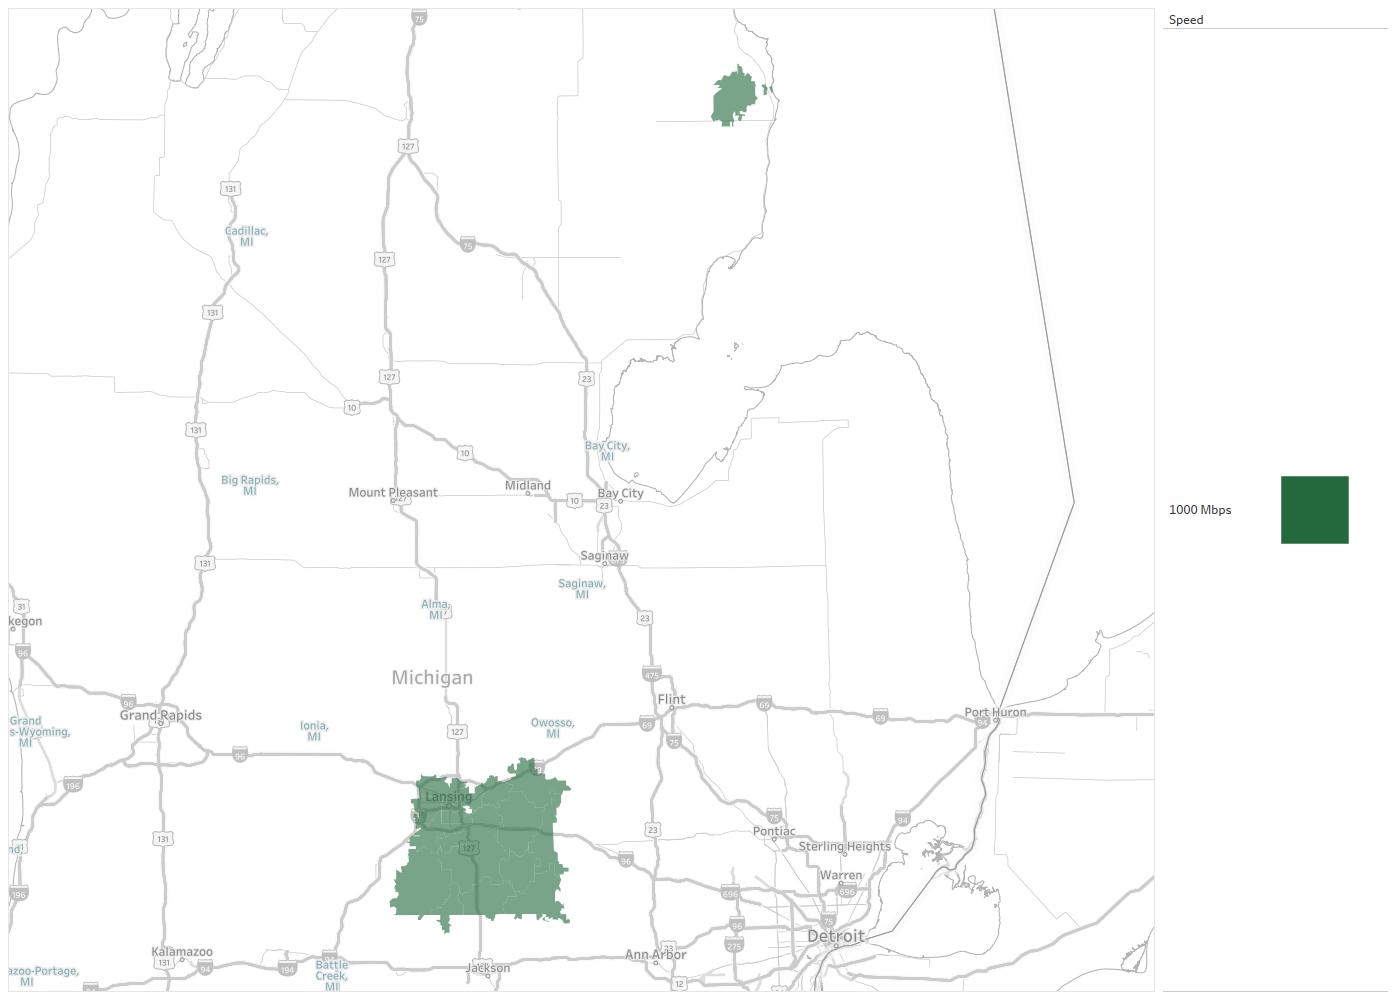 LightSd Communications Availability Areas & Coverage Map ... on map of mason ohio, map of highlands ranch co, cherry st mason mi, map of berkeley sc, dart container mason mi,